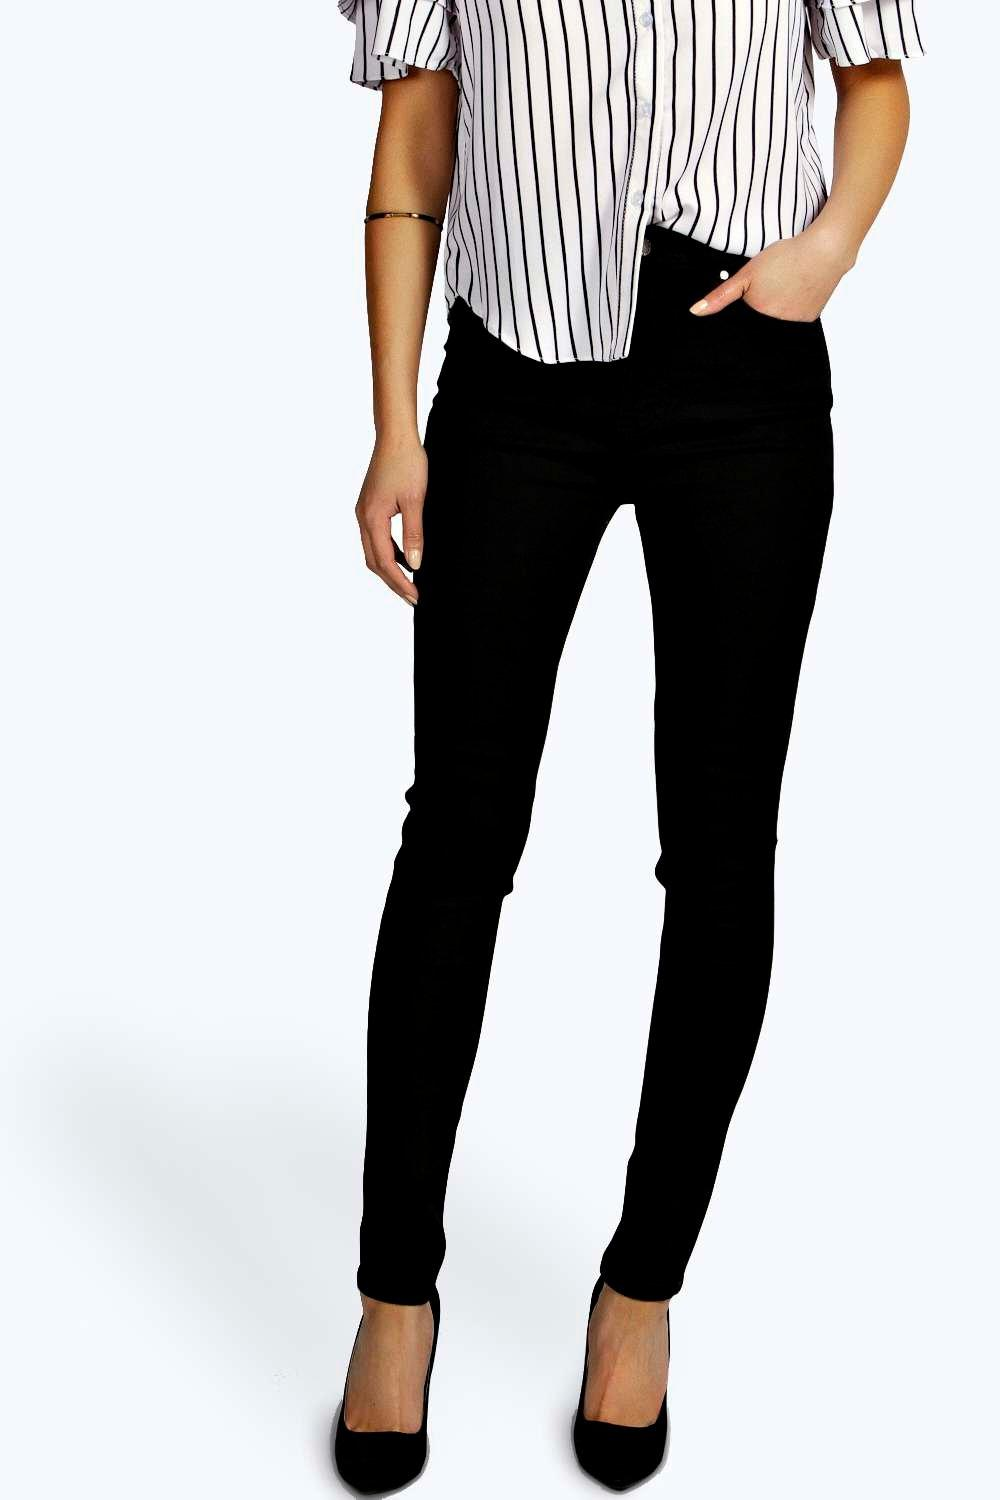 High Waisted Black Jeans Skinny